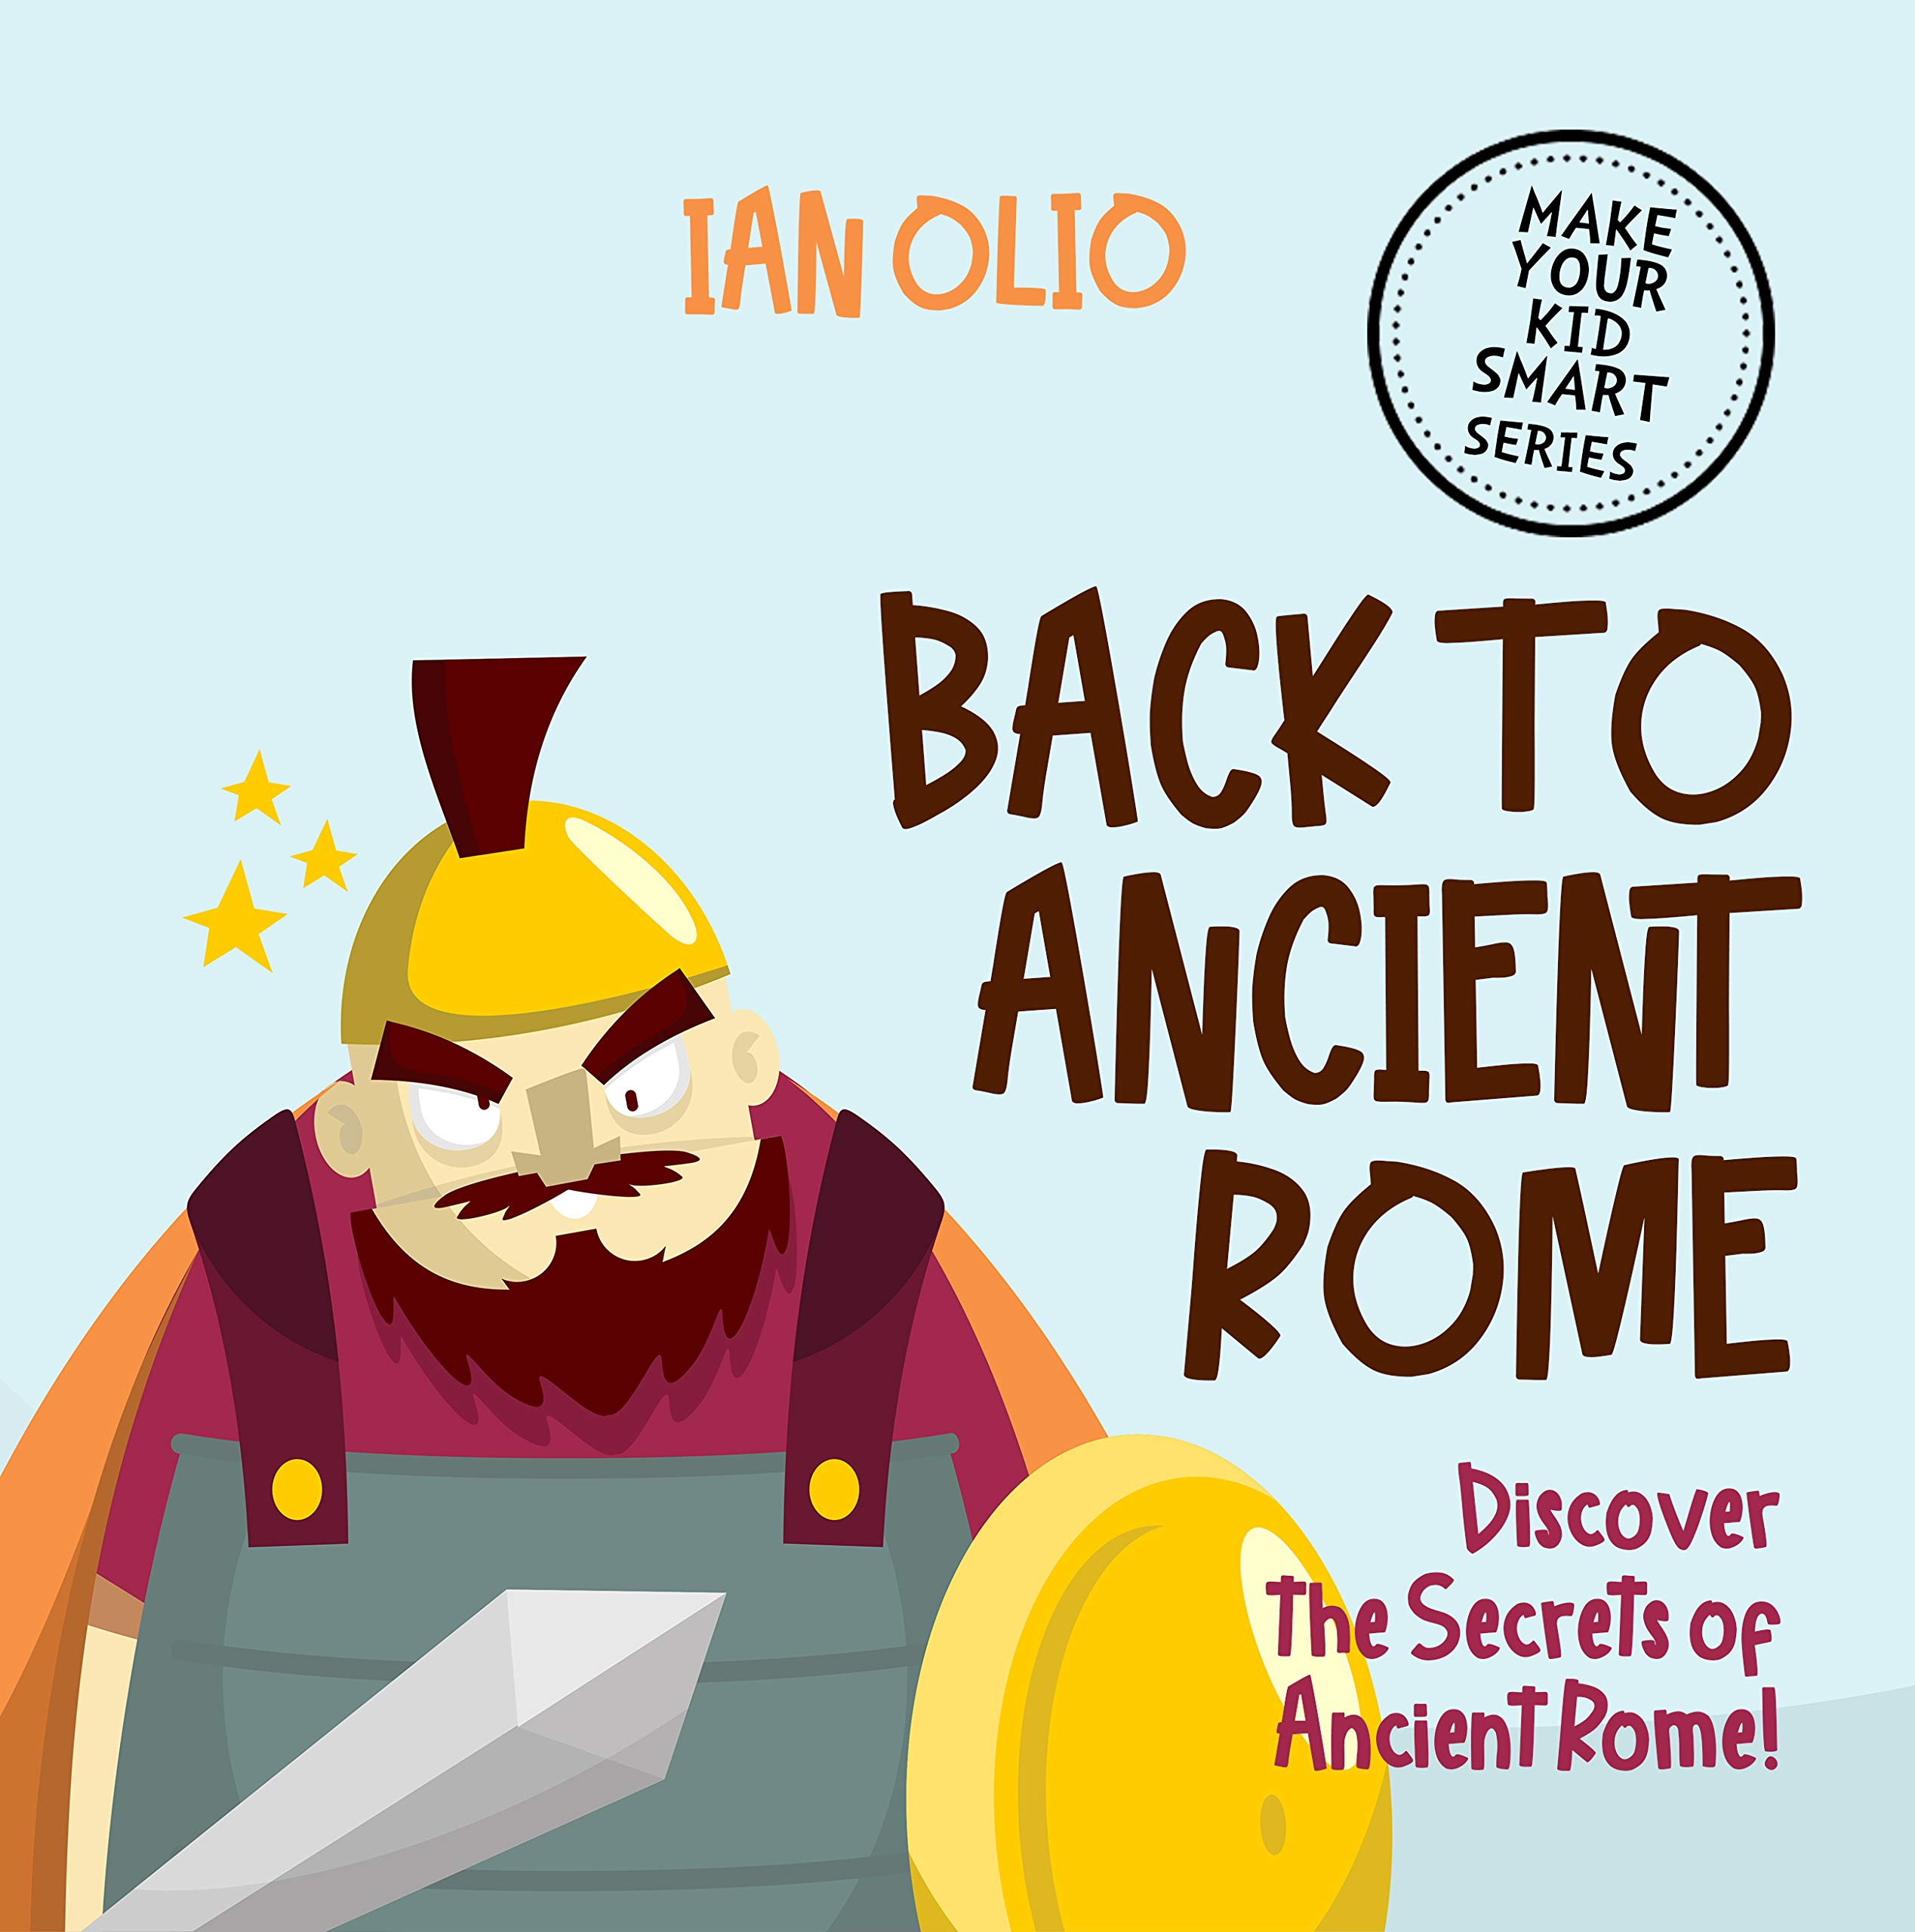 Back to Ancient Rome: Discover The Secrets of Ancient Rome. MAKE YOUR KID SMART SERIES.: For Kids Ages 3-8!